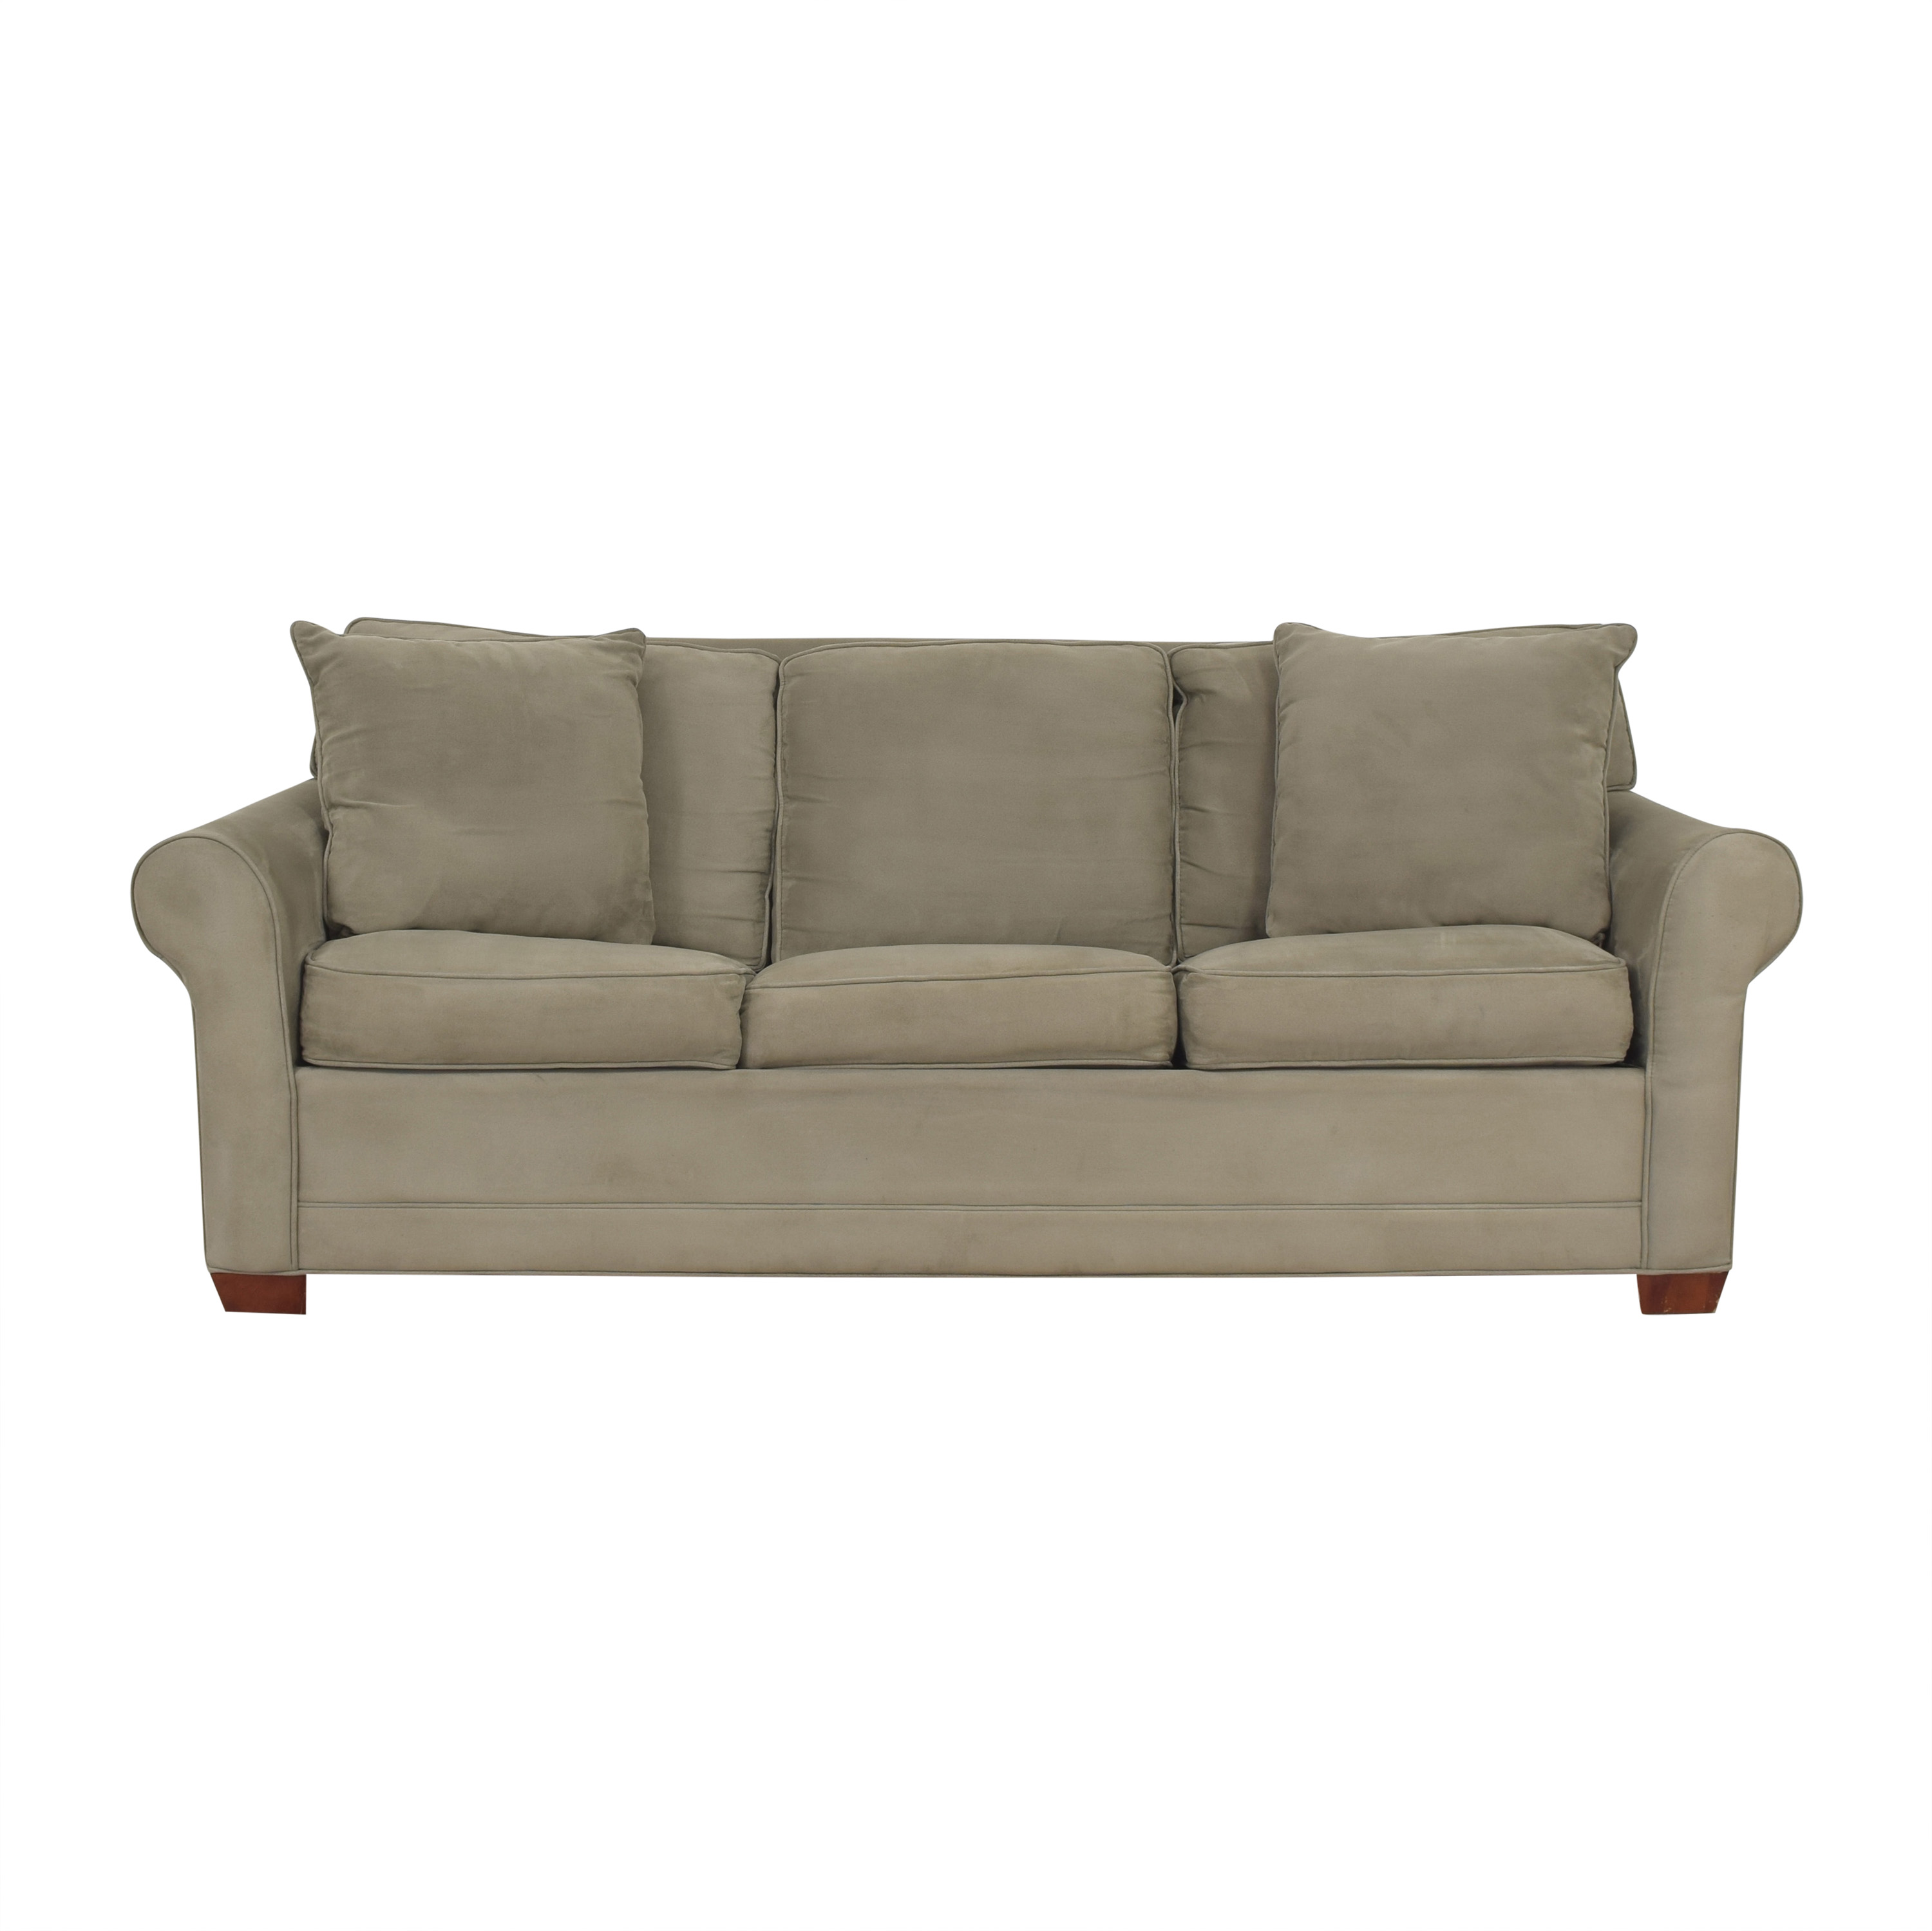 buy Raymour & Flanigan Three Seat Sleeper Sofa Raymour & Flanigan Sofas